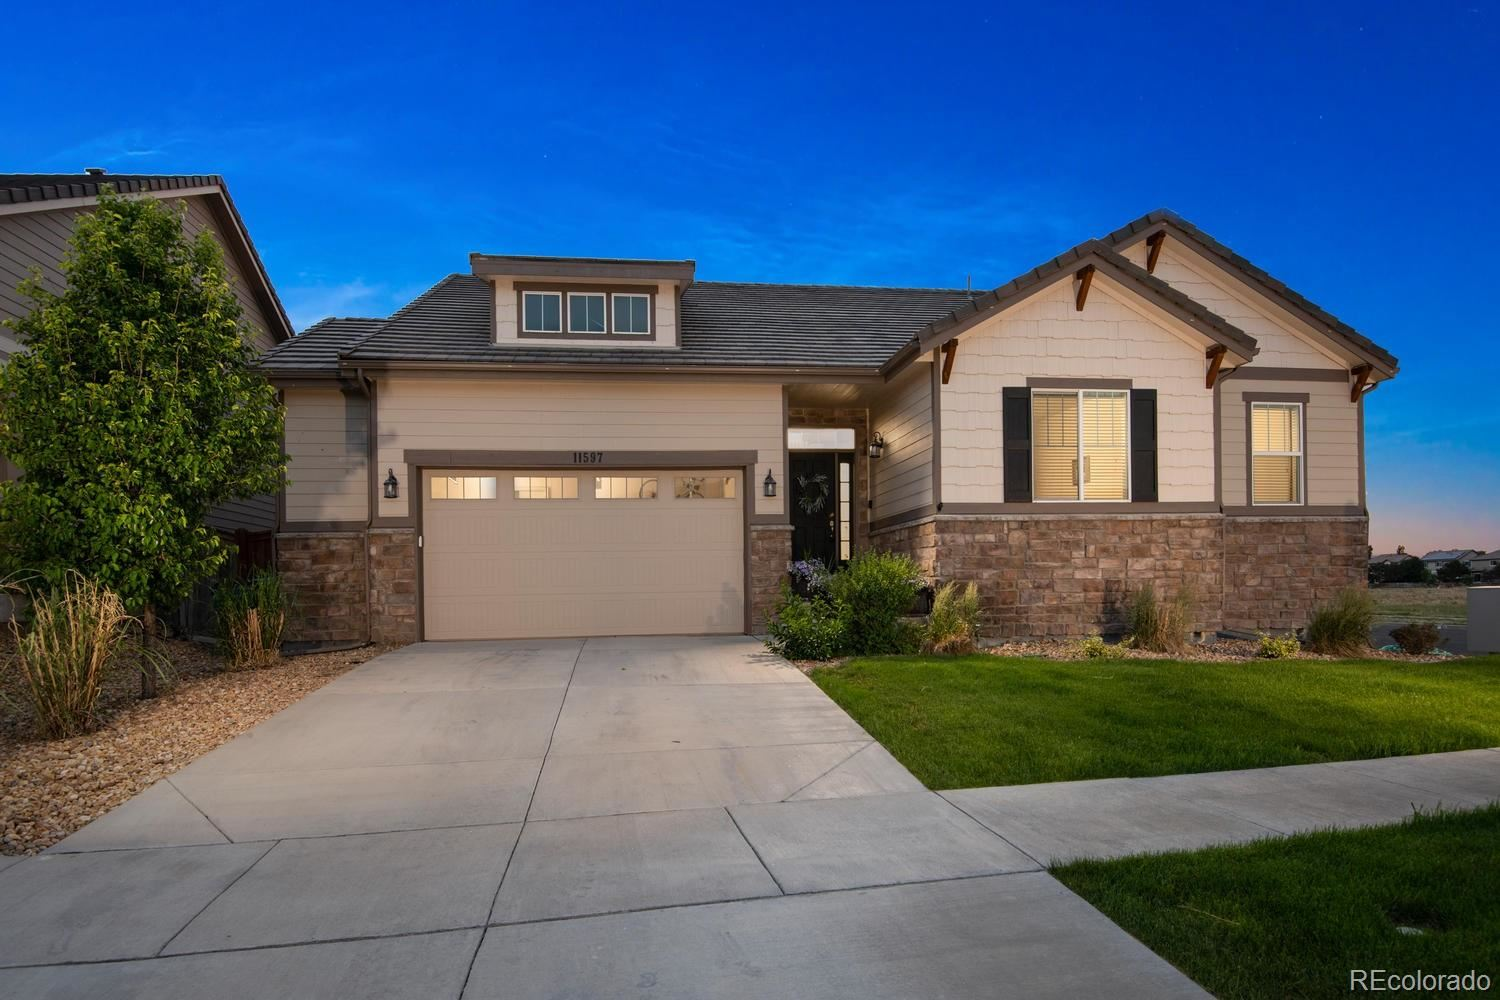 11597 Jasper Street, Commerce City, CO 80022 - #: 8103182